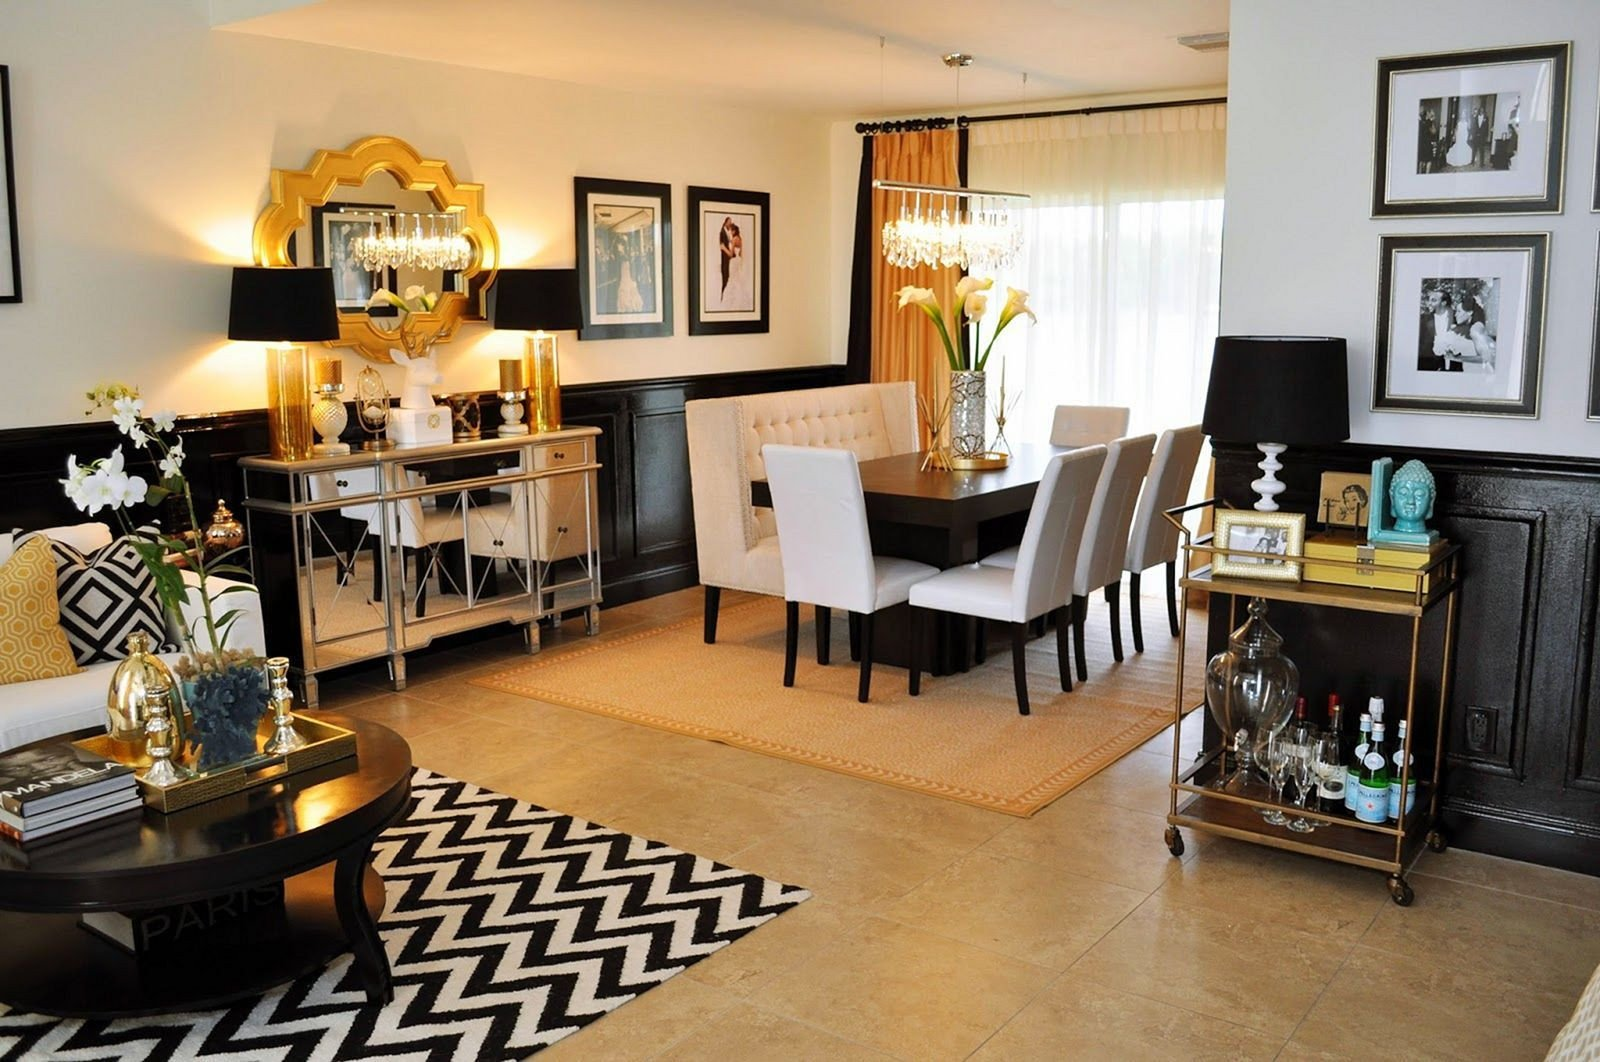 Bedroom Sitting area Ideas Awesome 23 Best and Wonderful Black White and Gold Living Room